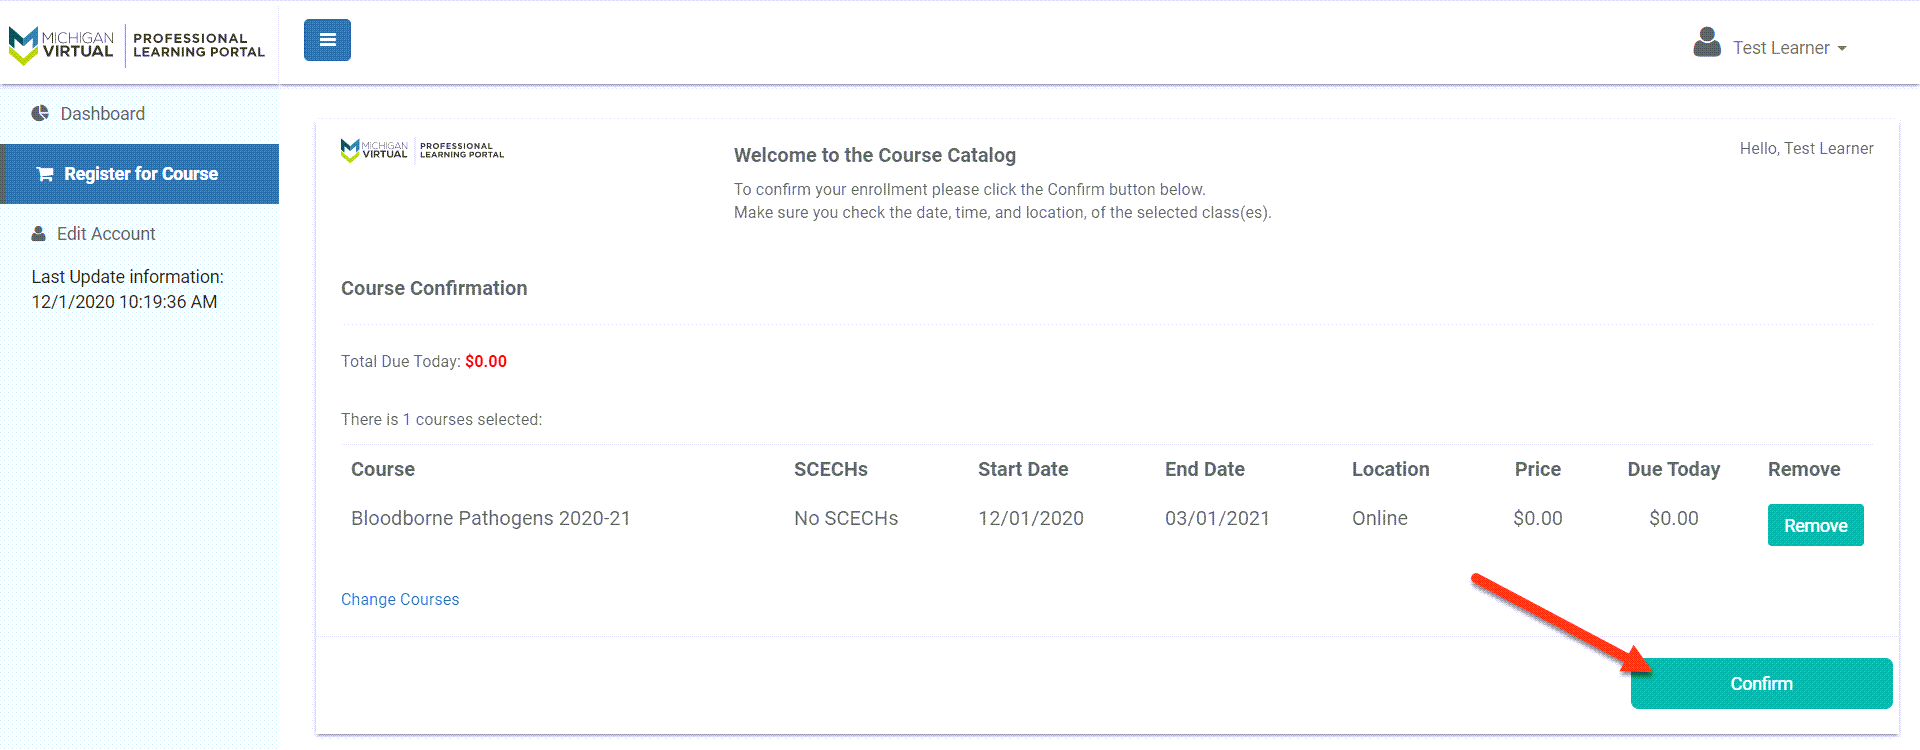 The confirmation page displays the course details and cost. An arrow points to the Confirm button.